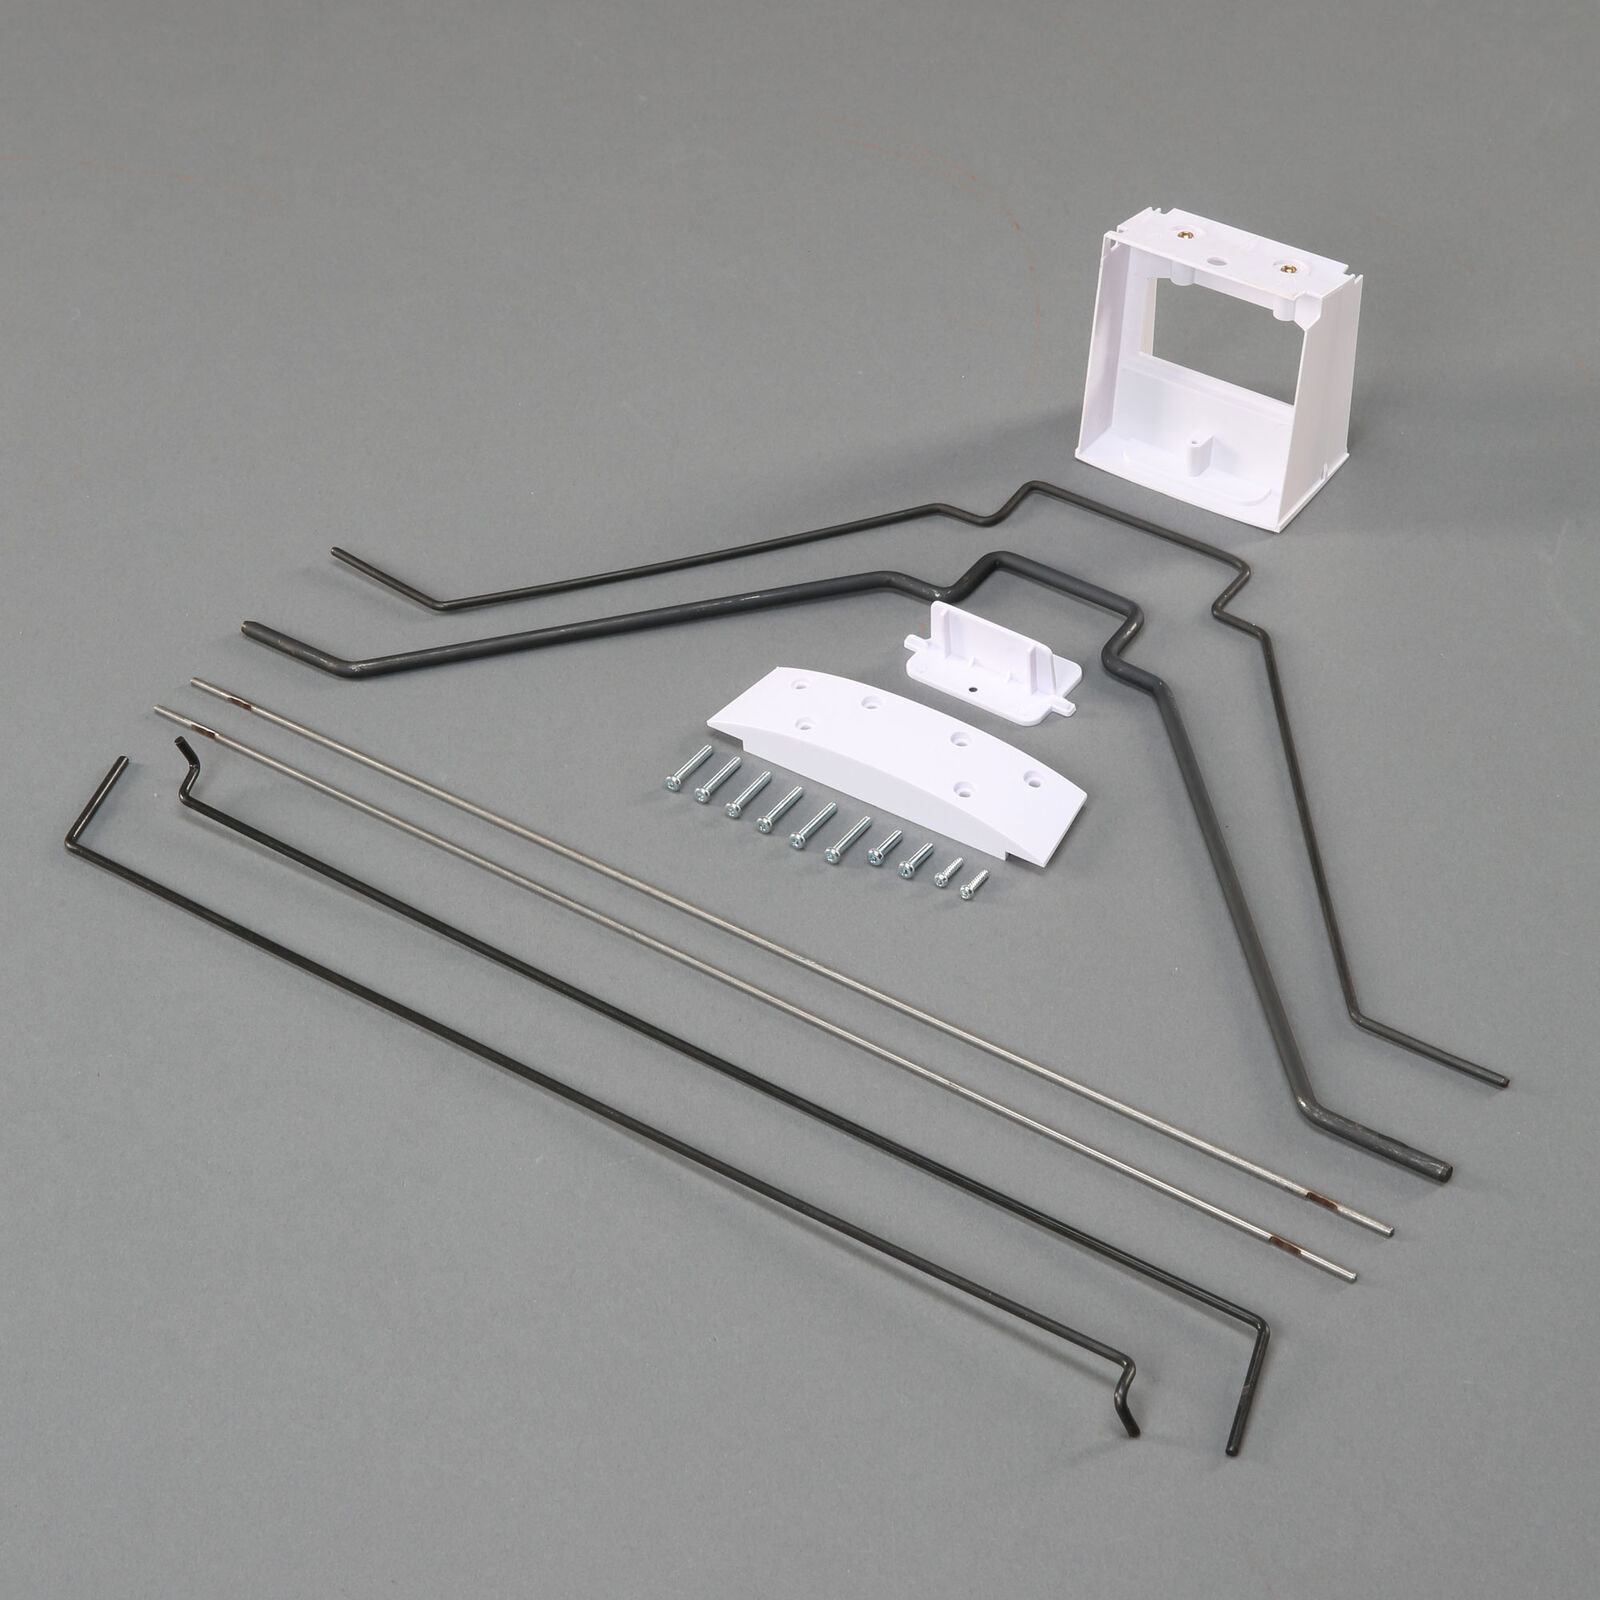 Wire Mounting Set for Carbon-Z Cessna 150: Carbon-Z Floats